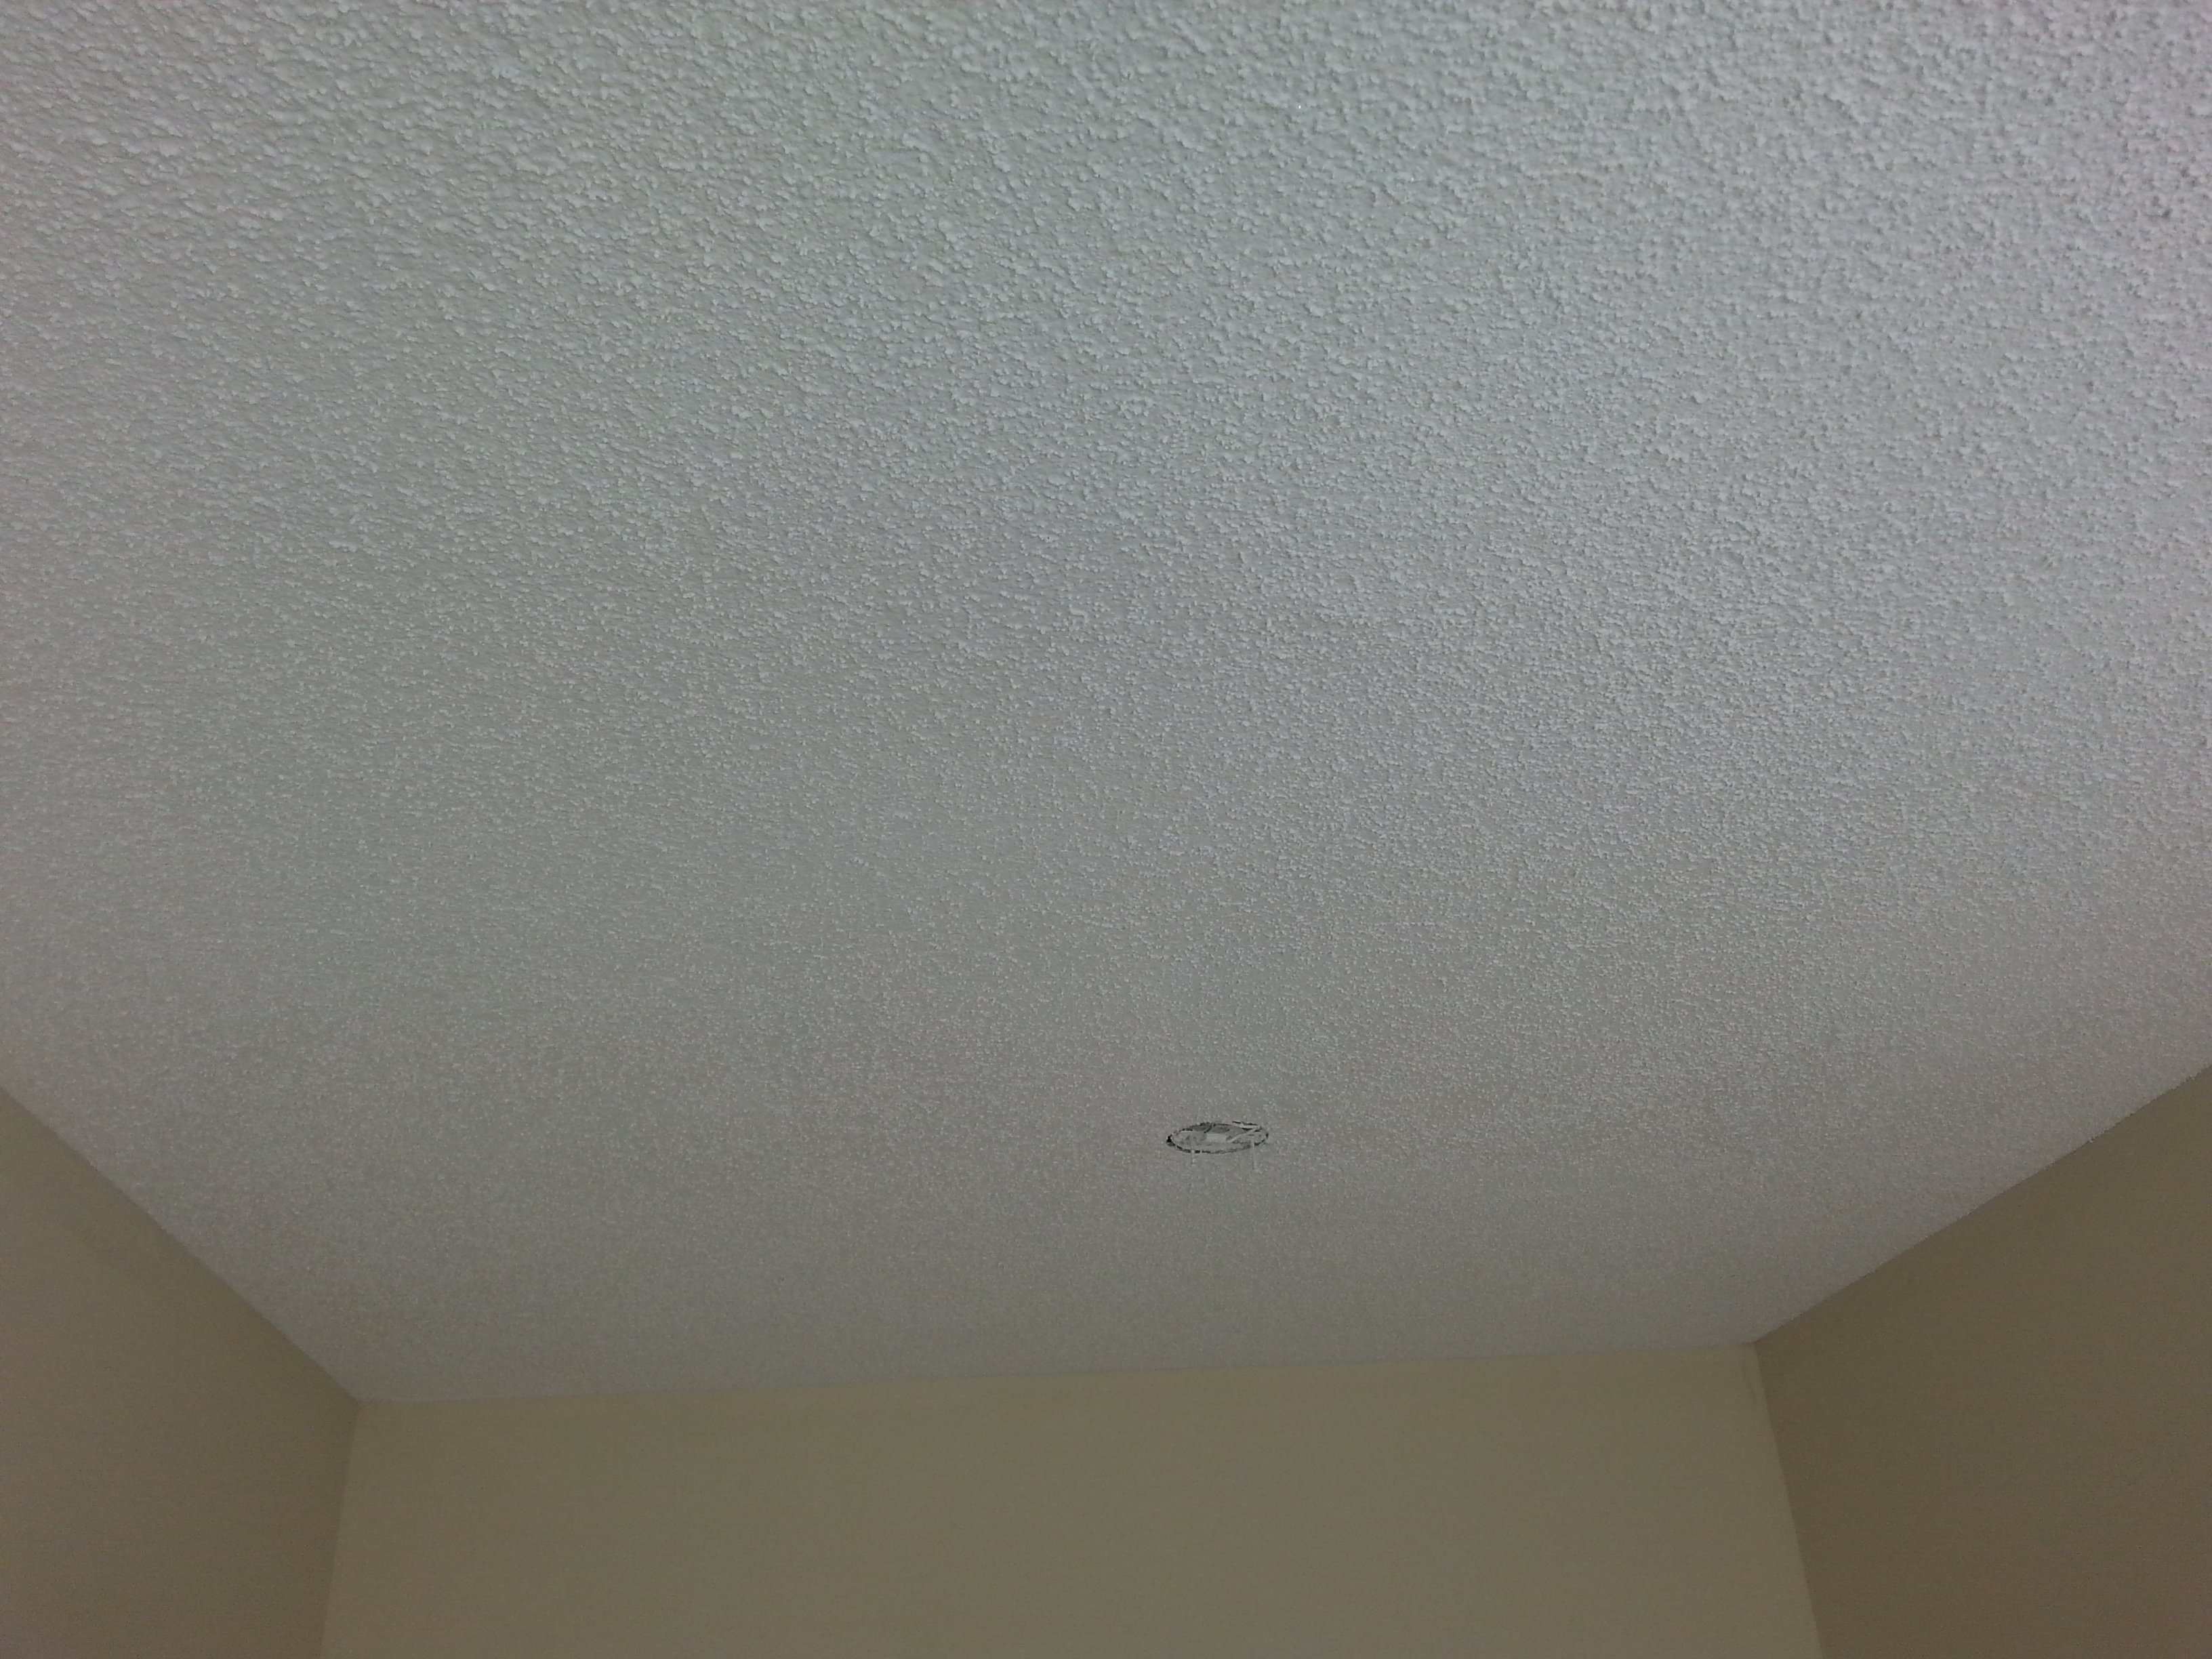 Water Stains On Your Ceiling Common Causes Solution Rh Homeadvisor Com Bleach Popcorn Cleaning Mold From How To Remove